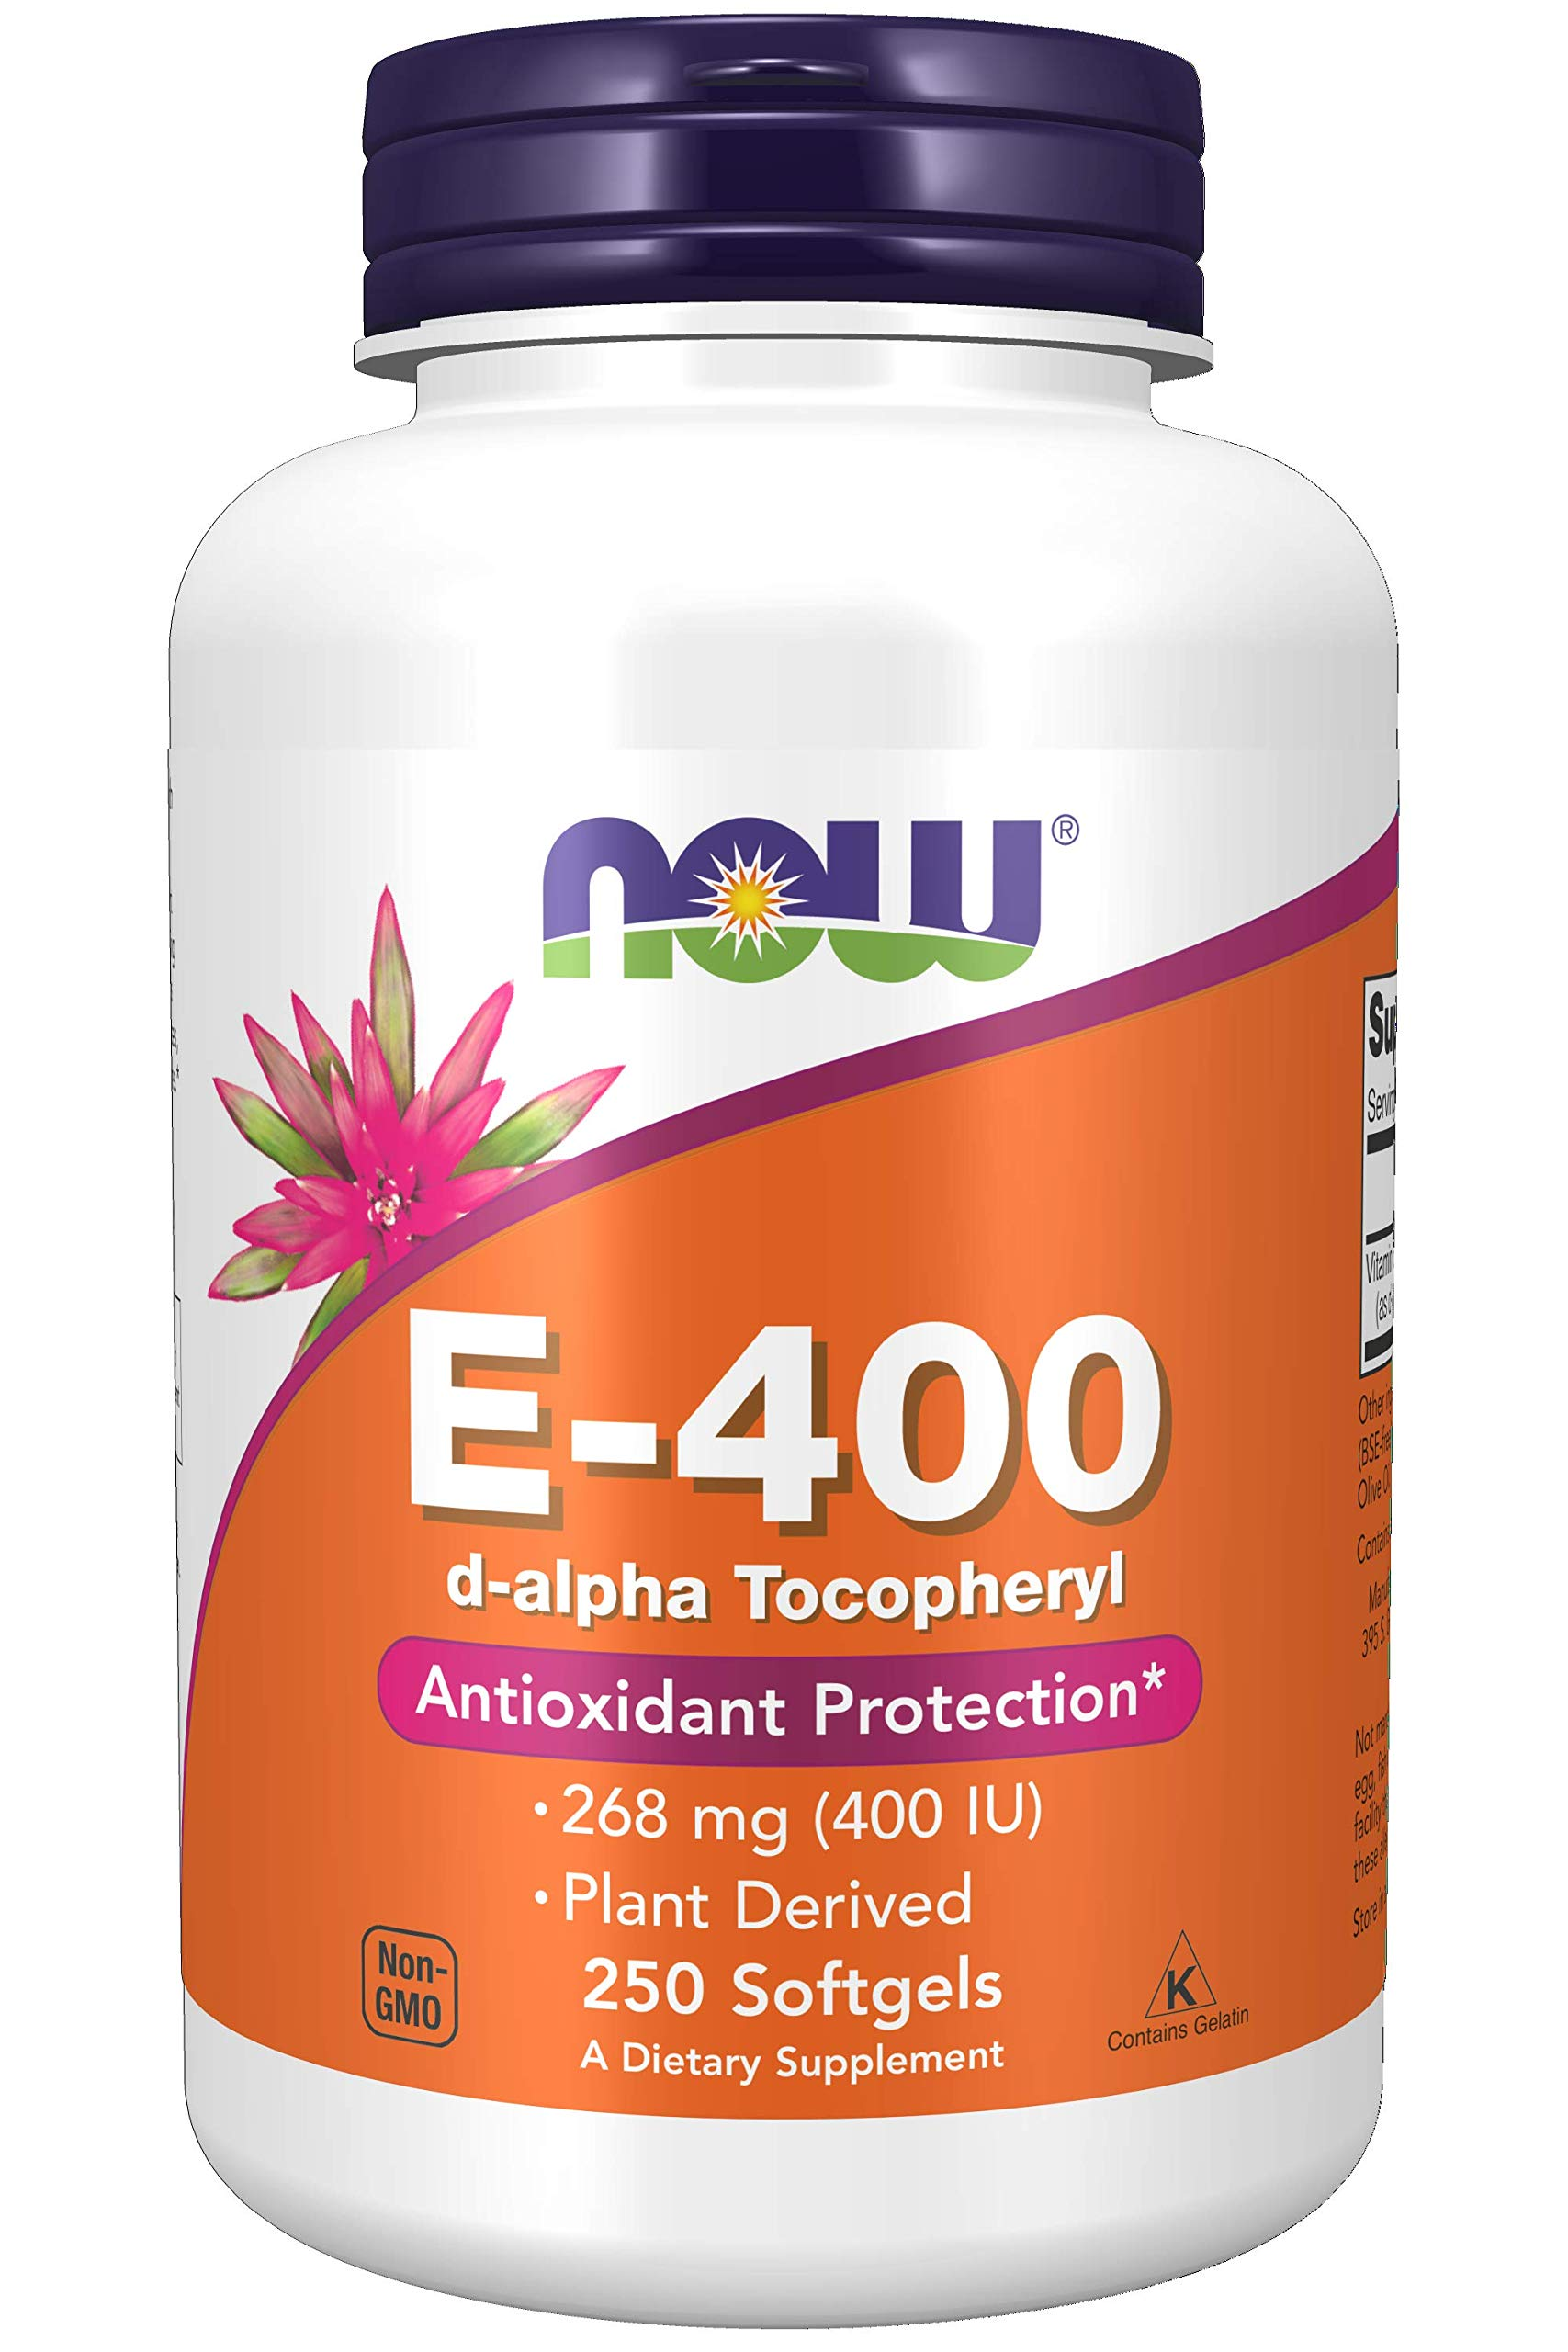 Now Supplements Vitamin E-400 IU D-Alpha Tocopheryl, Antioxidant Protection, Softgels, 250 Count (Pack of 1)